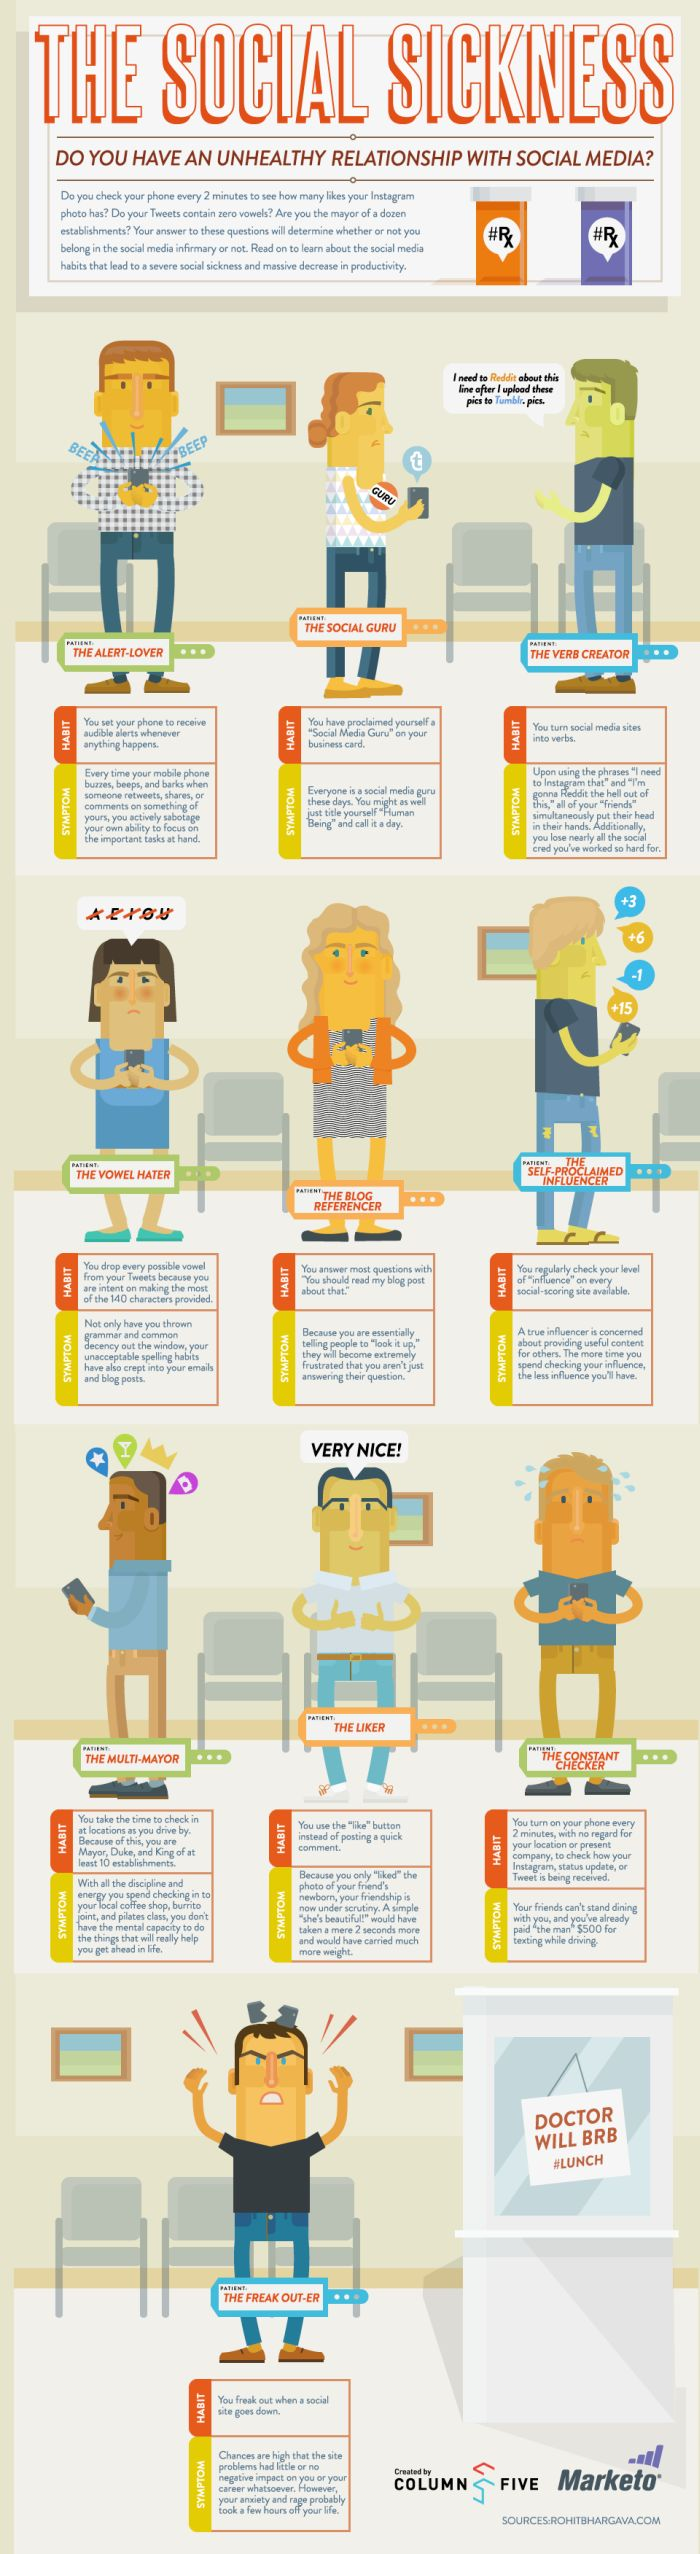 The Social Sickness (infographic)